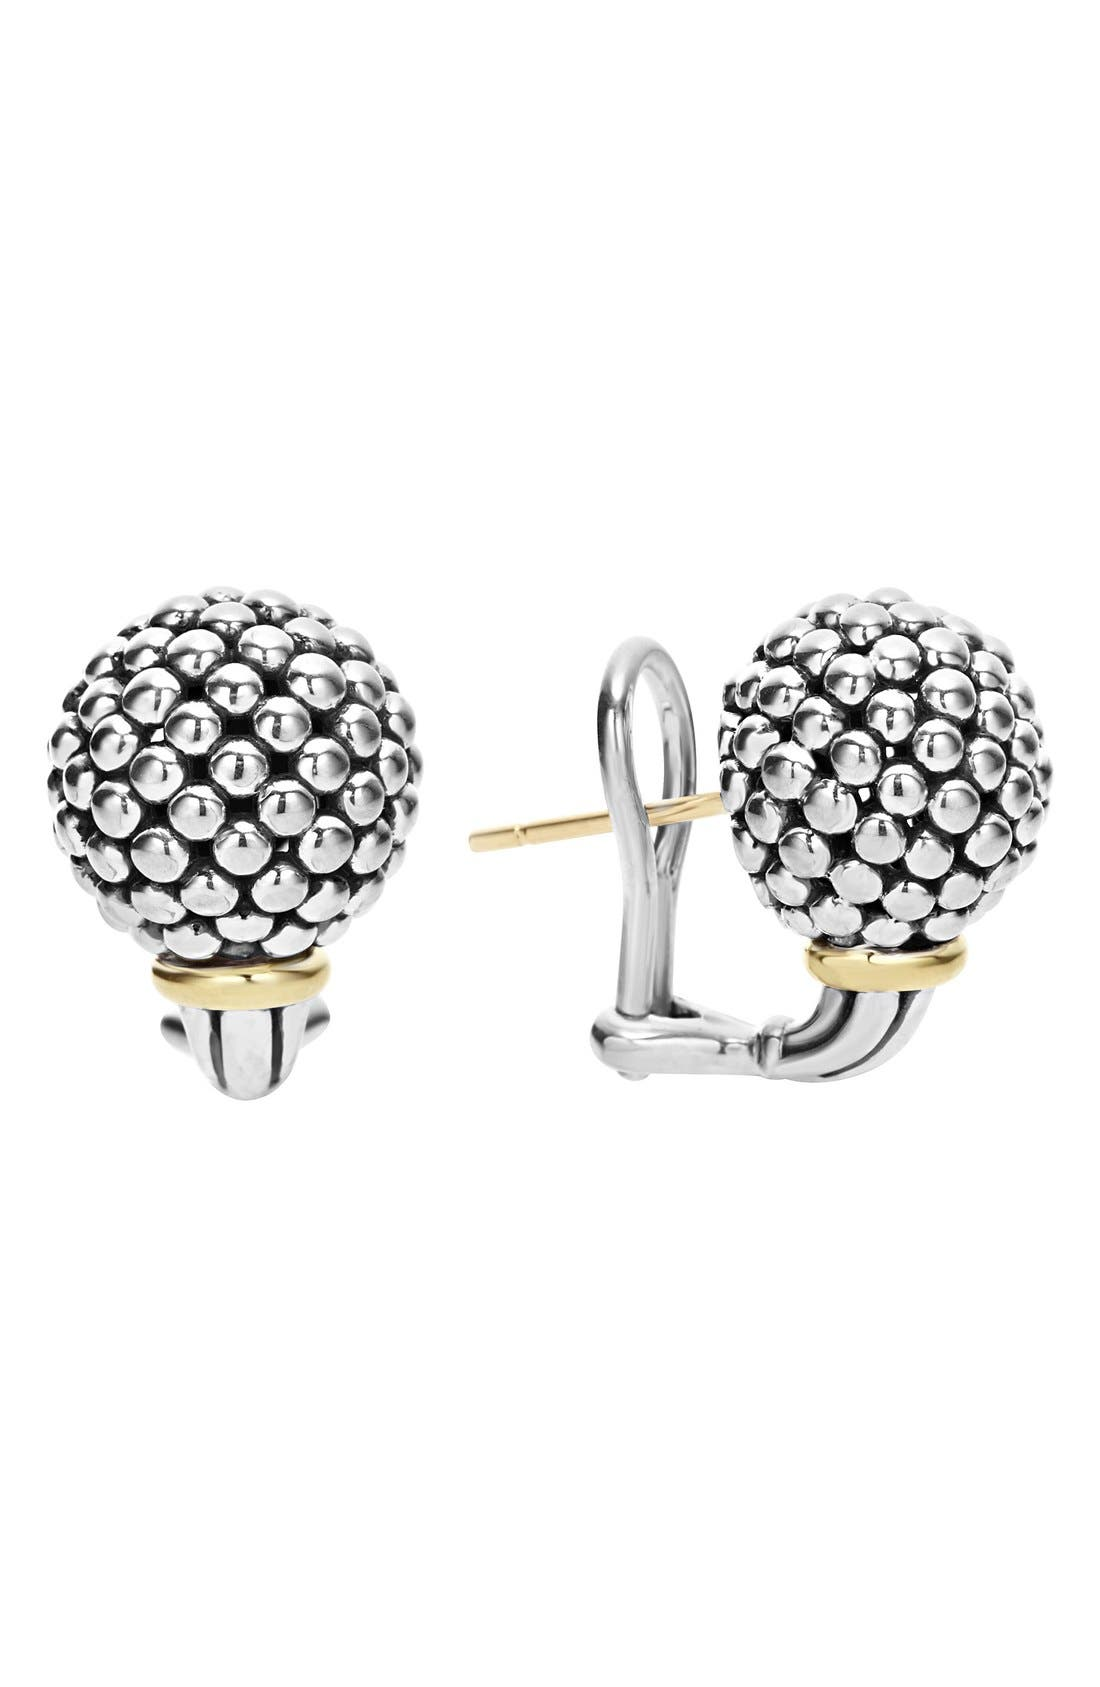 'Caviar Forever' Stud Earrings,                         Main,                         color, Silver/ Gold